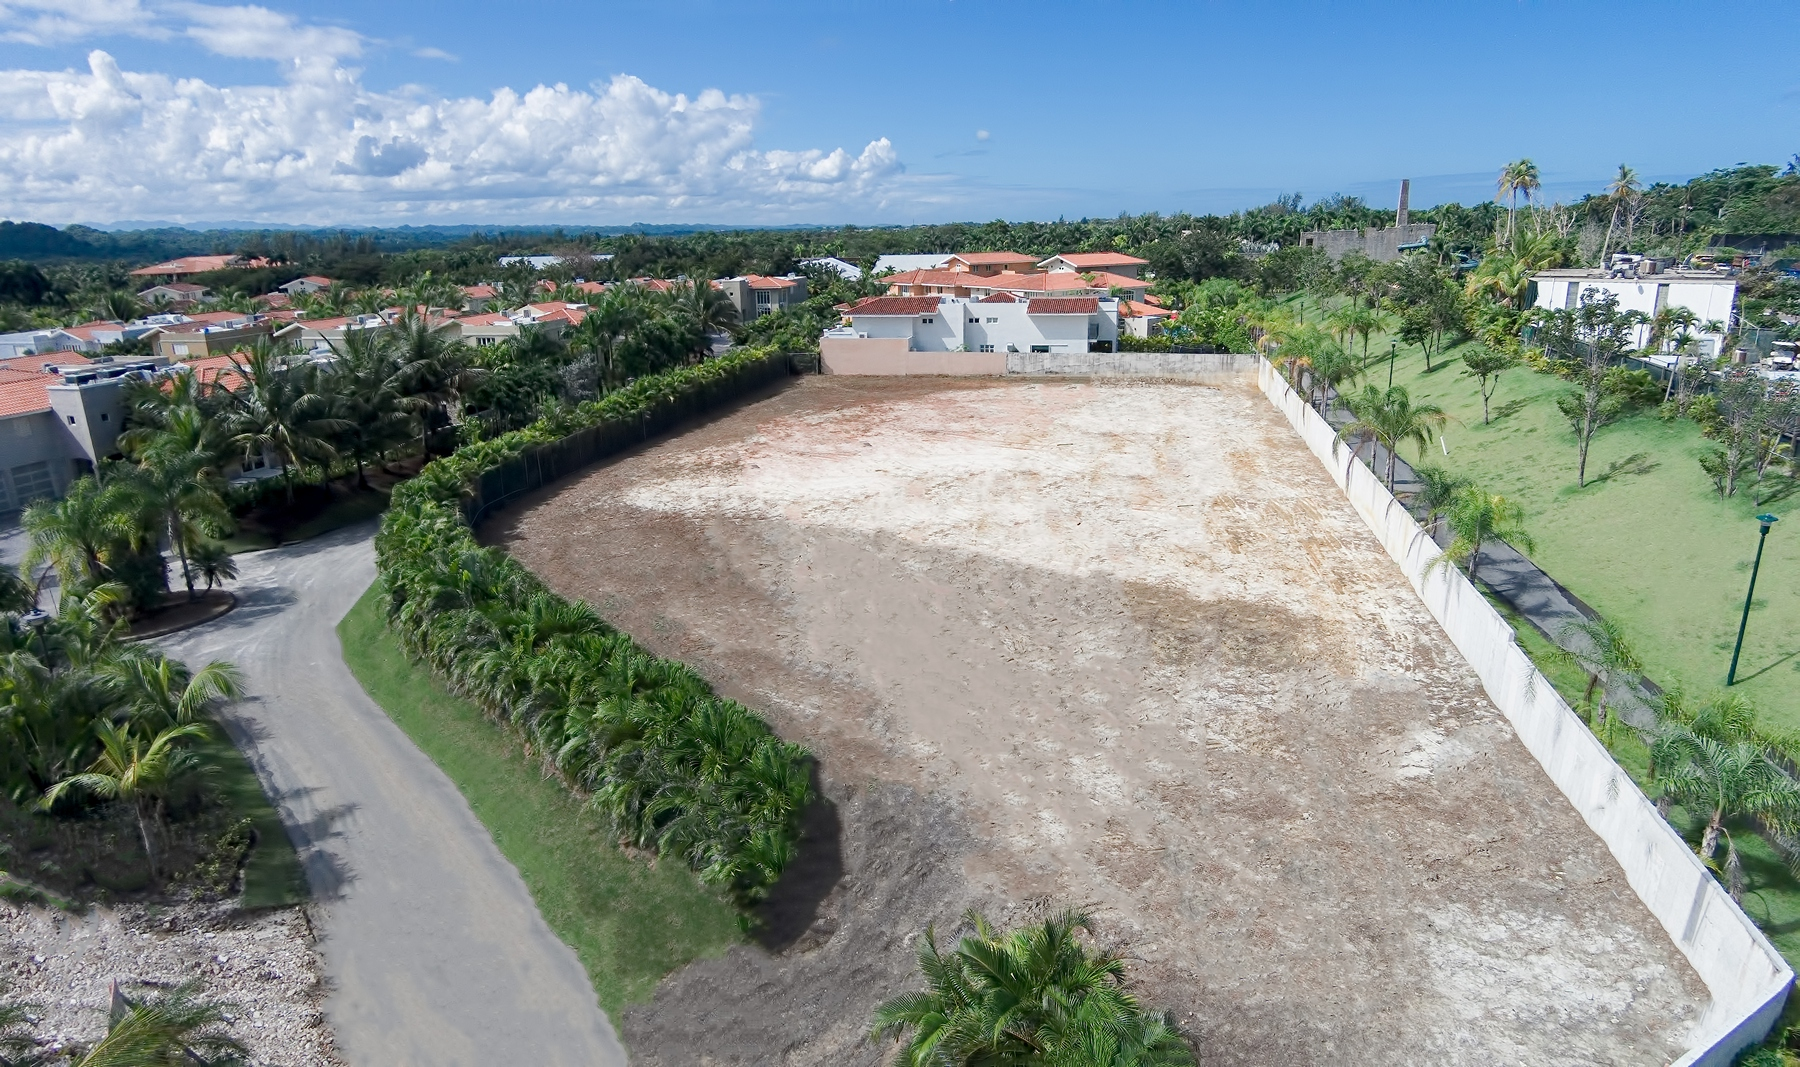 Terreno por un Venta en Dorado Beach East Unique Lot Opportunity 323 Dorado Beach East Dorado Beach, Puerto Rico 00646 Puerto Rico